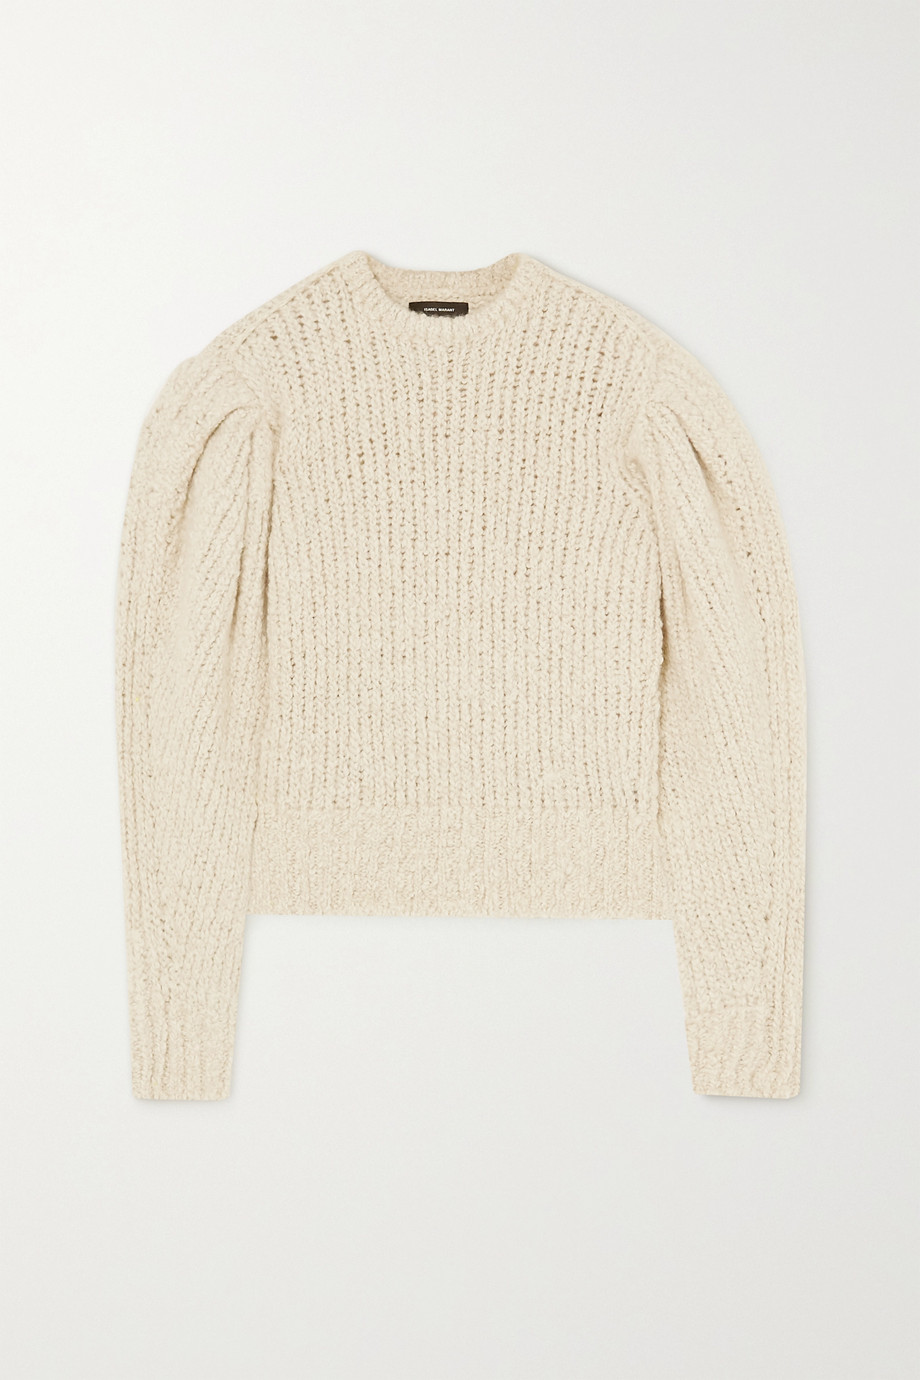 Isabel Marant Enora ribbed-knit sweater